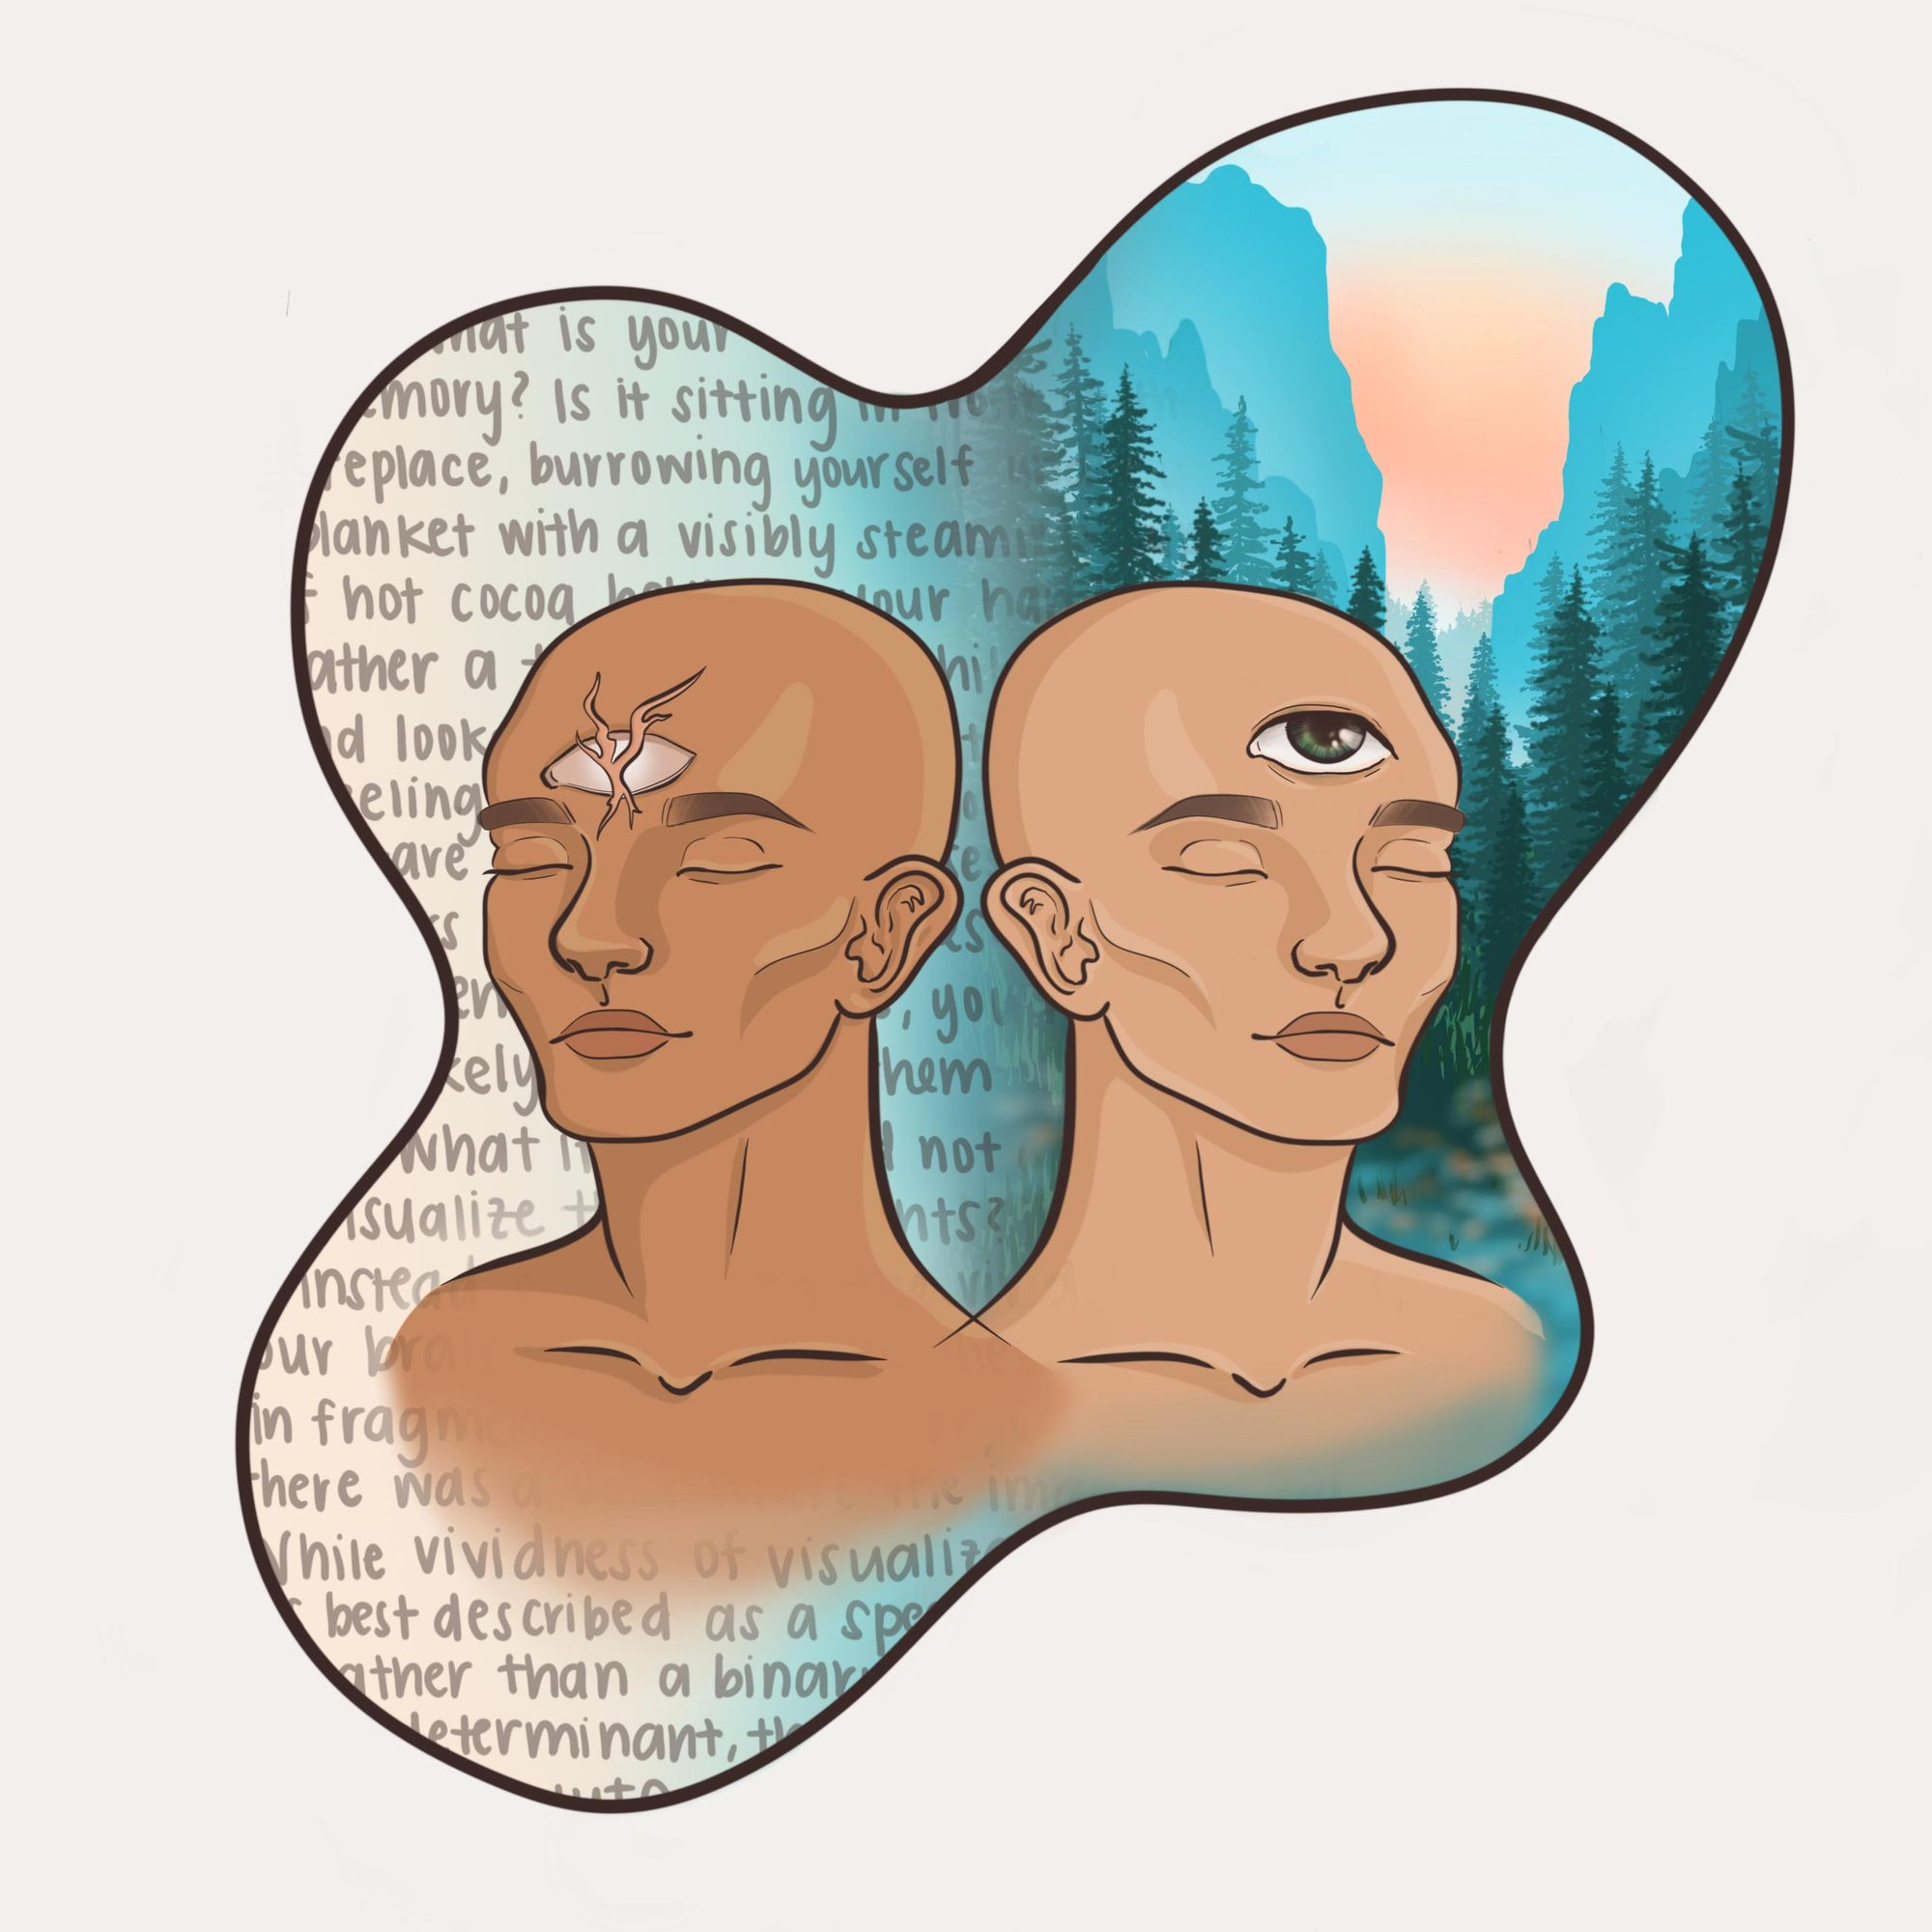 Artwork depicting how those with aphantasia lack a 'mind's eye'; because those with aphantasia lack a visual memory, they use literary memory instead